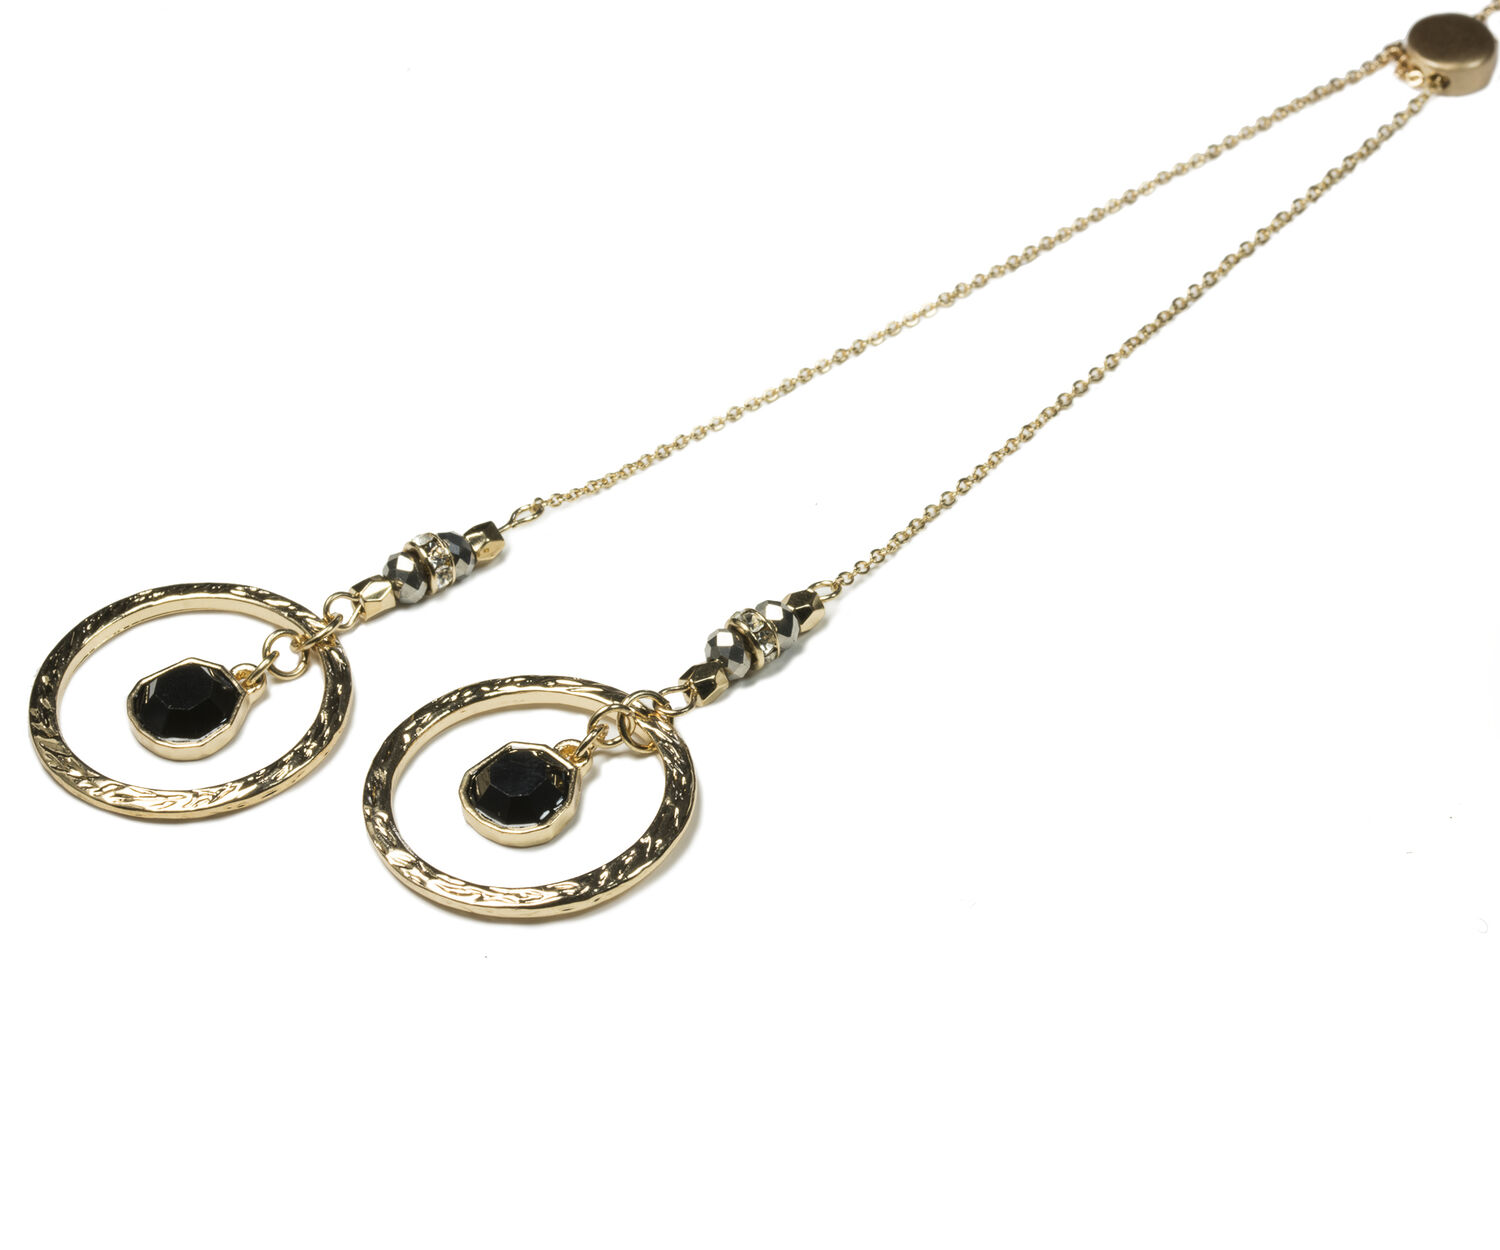 Oasis, RING DROP NECKLACE Gold 1